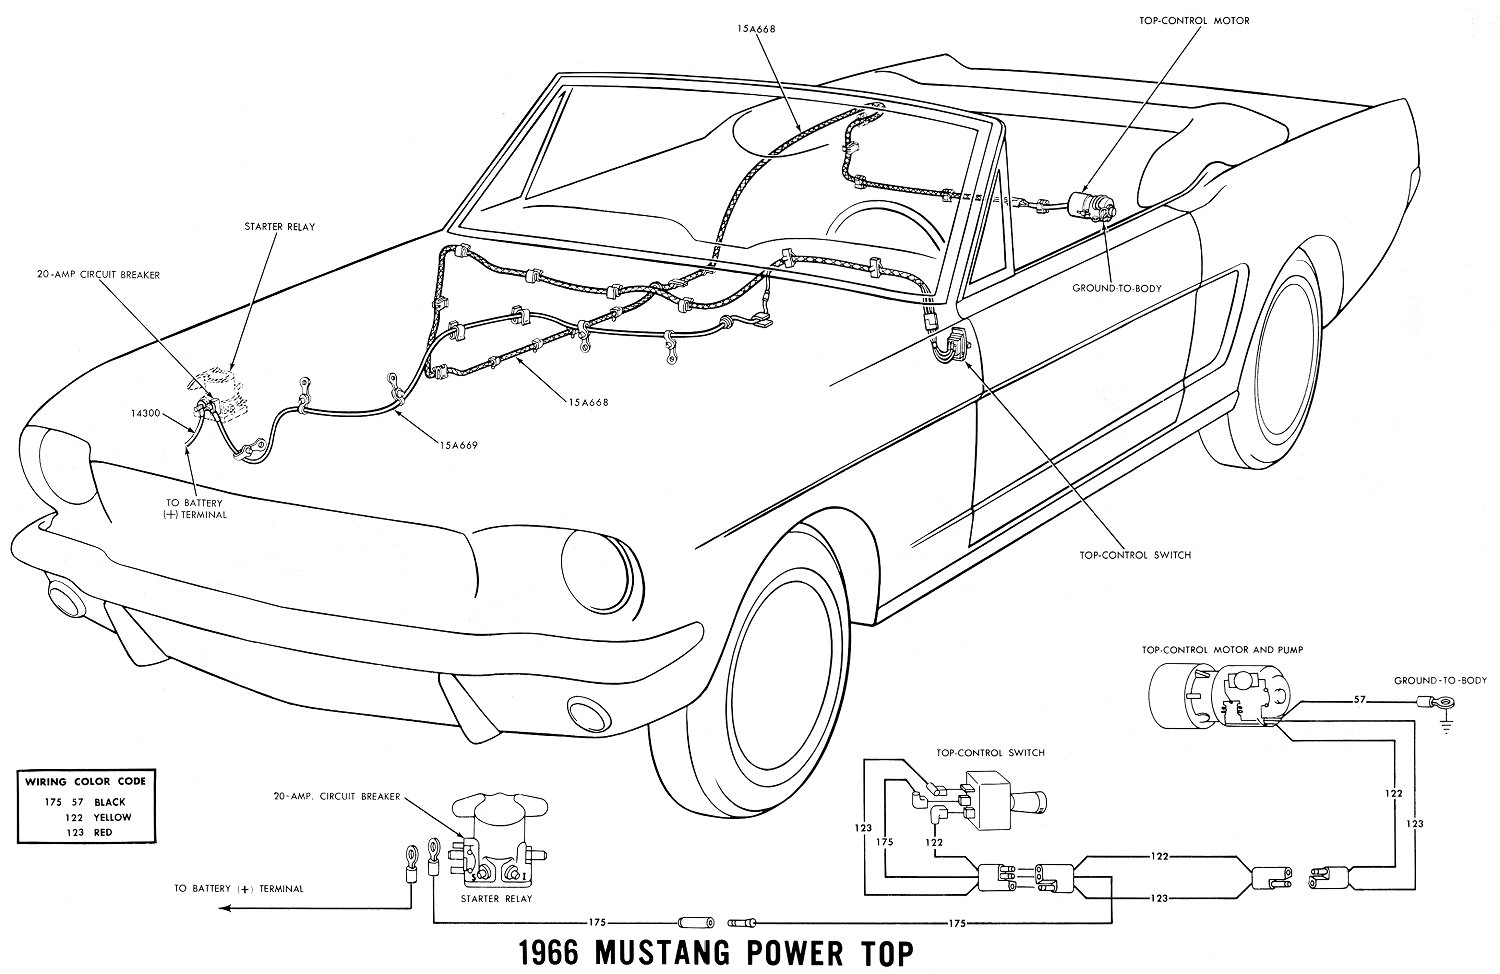 wiring diagram best ford mustang free wiring diagram for ford mustang free